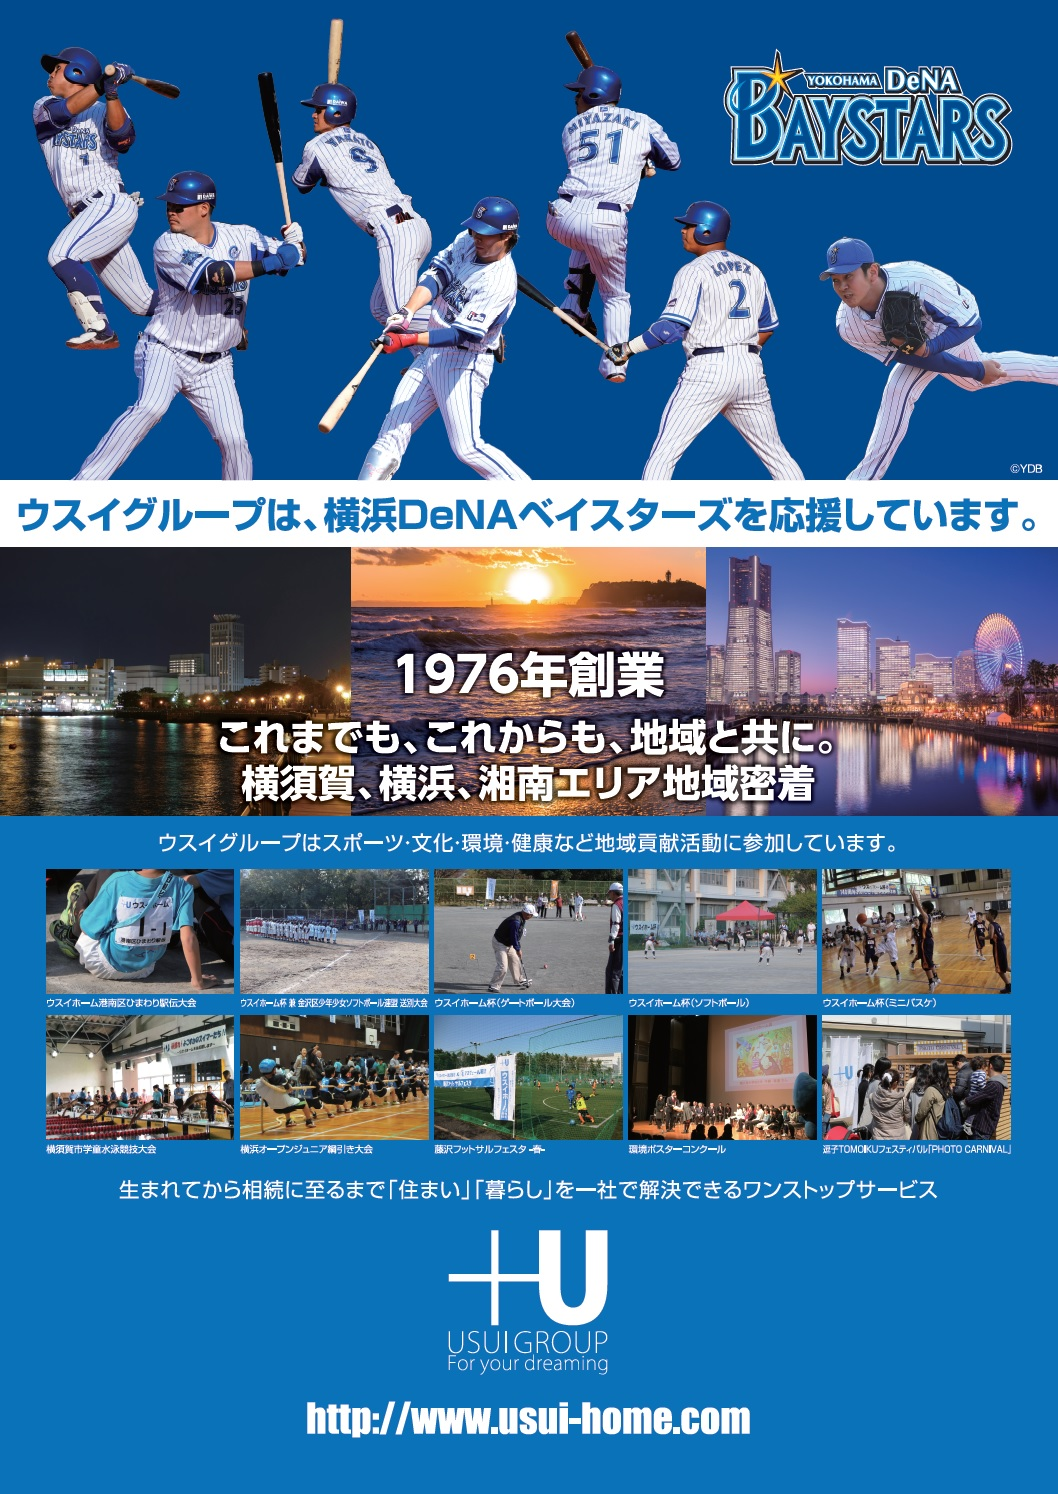 baystars-support-2018 A2